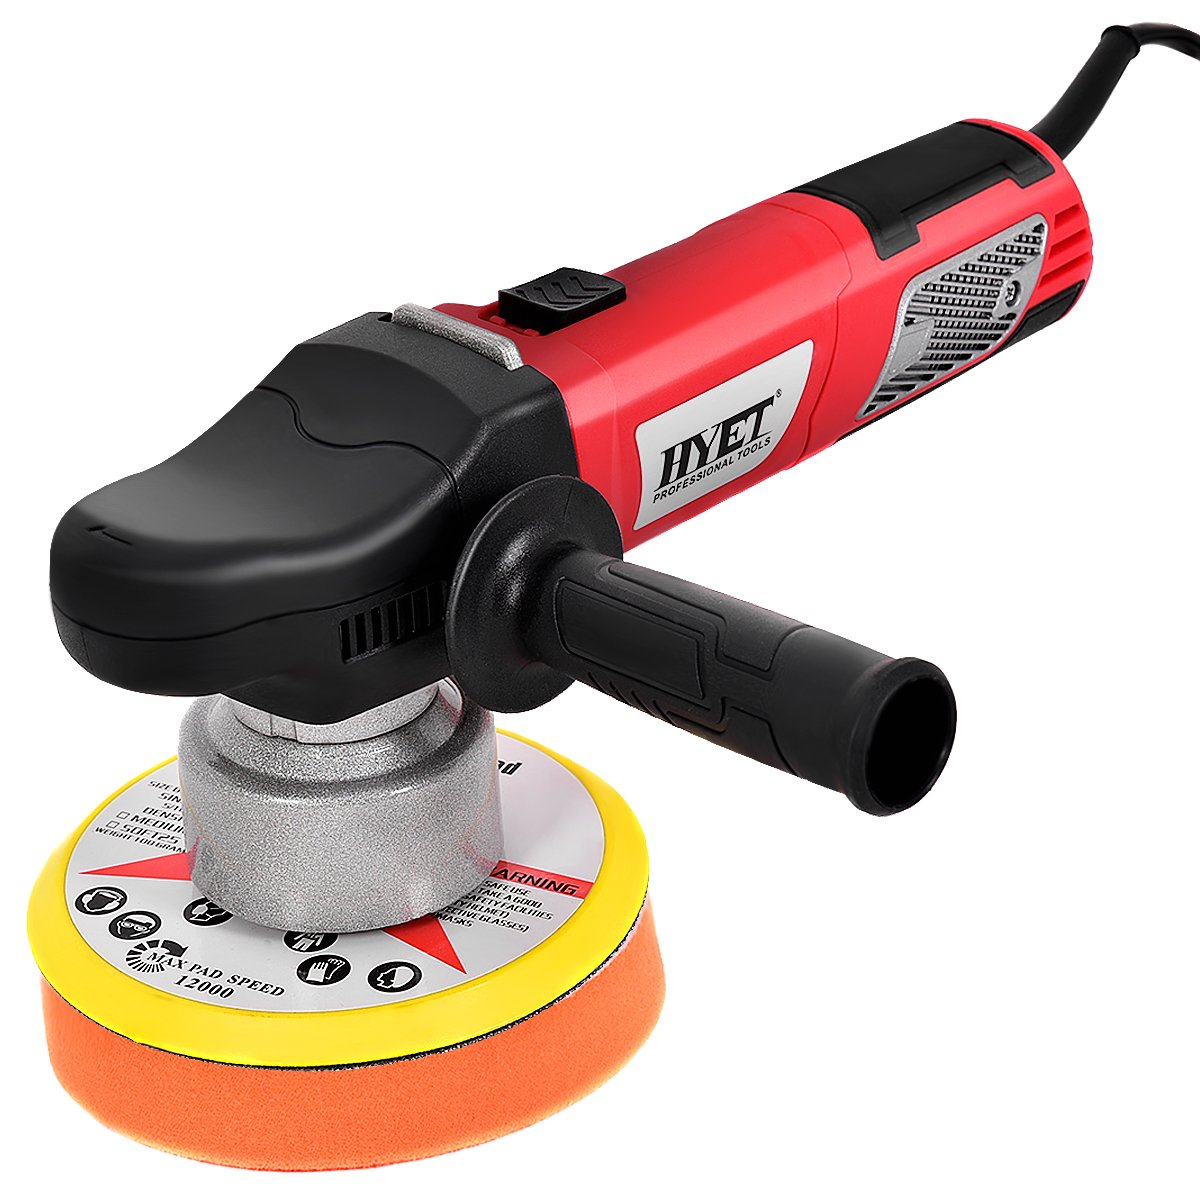 Goplus Random Orbital Polisher Electrical Sander Variable Speed Dual-Action Grinder  Buffer Kit For Auto Detail (6 inch) - - Amazon.com